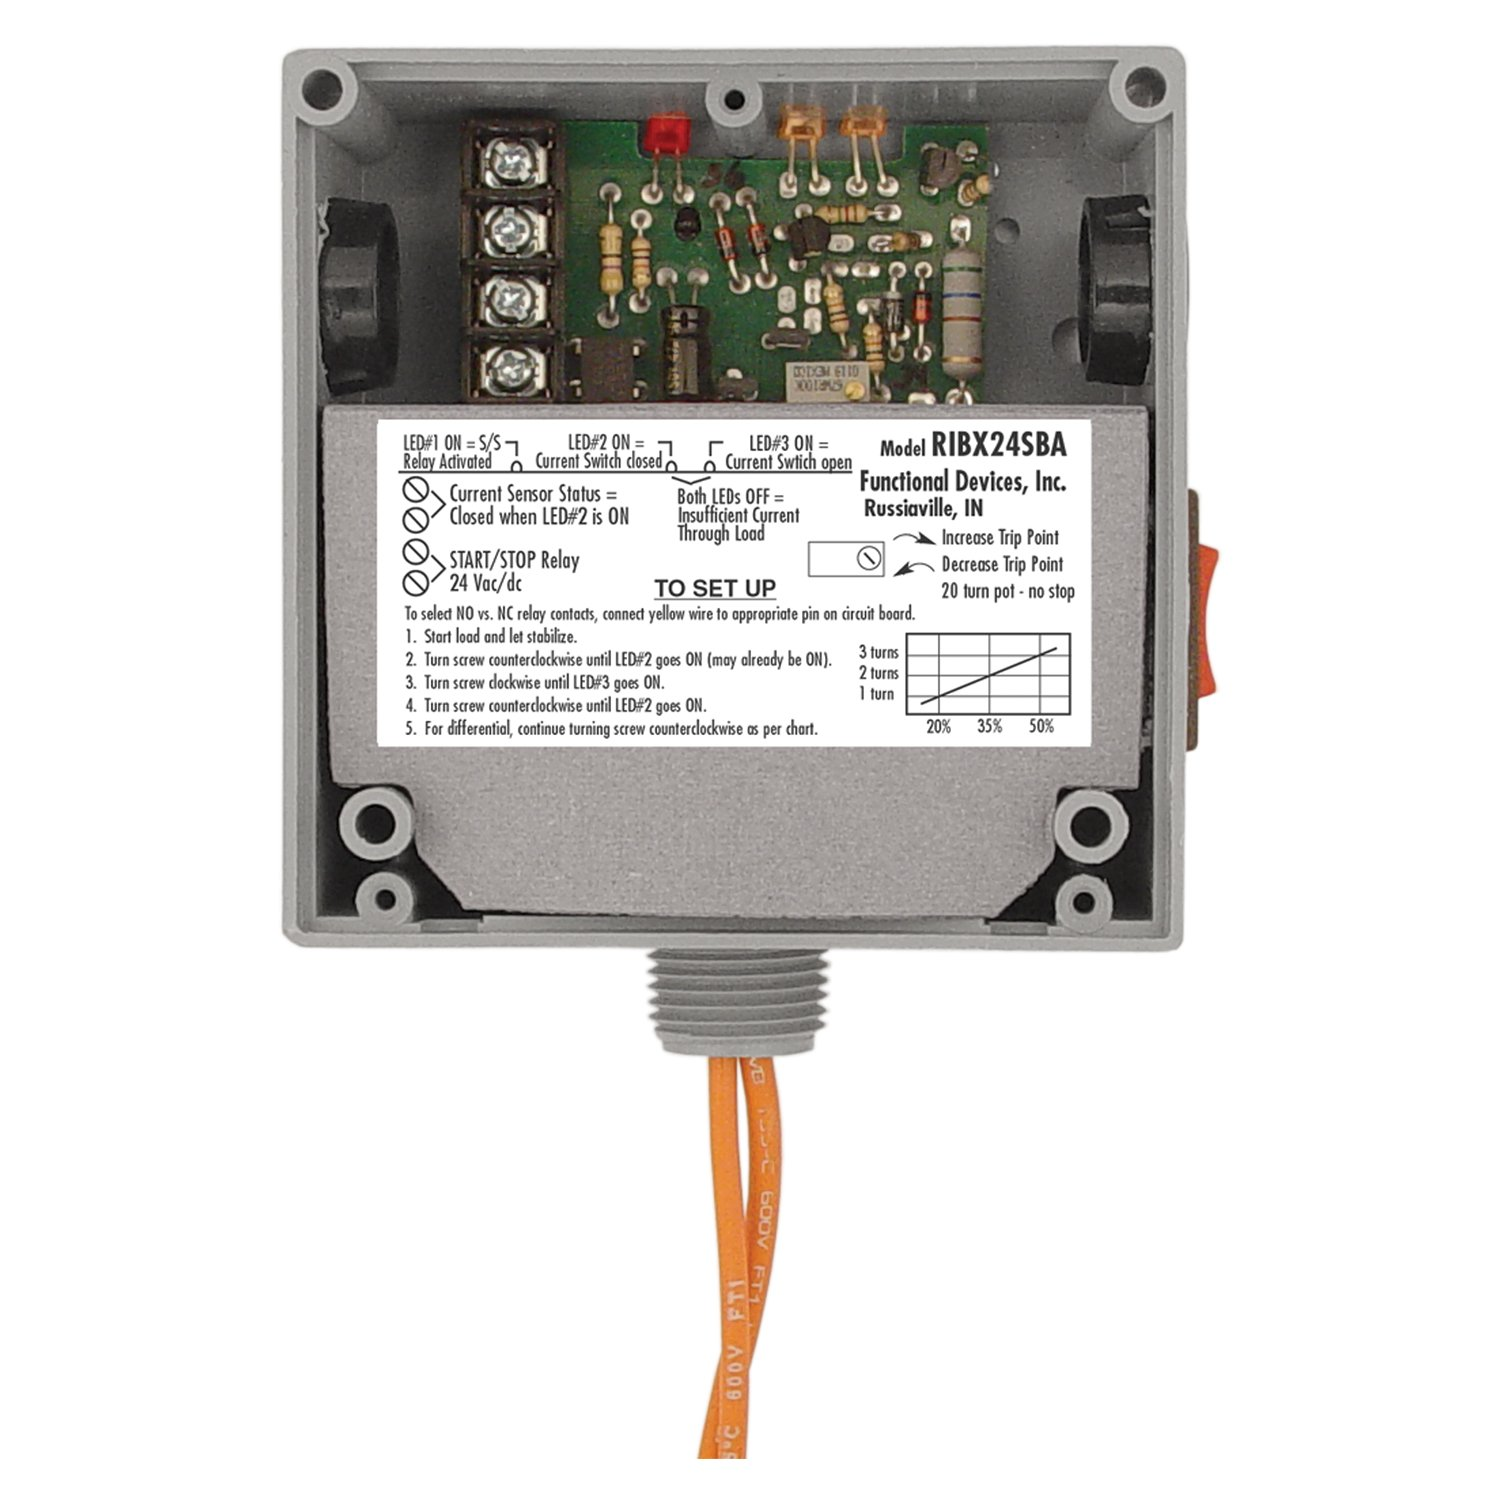 Functional Devices (RIB) RIBX24SBA Enclosed Internal AC Sensor, Adjustable + Relay 20Amp SPST + Override 24Vac/dc